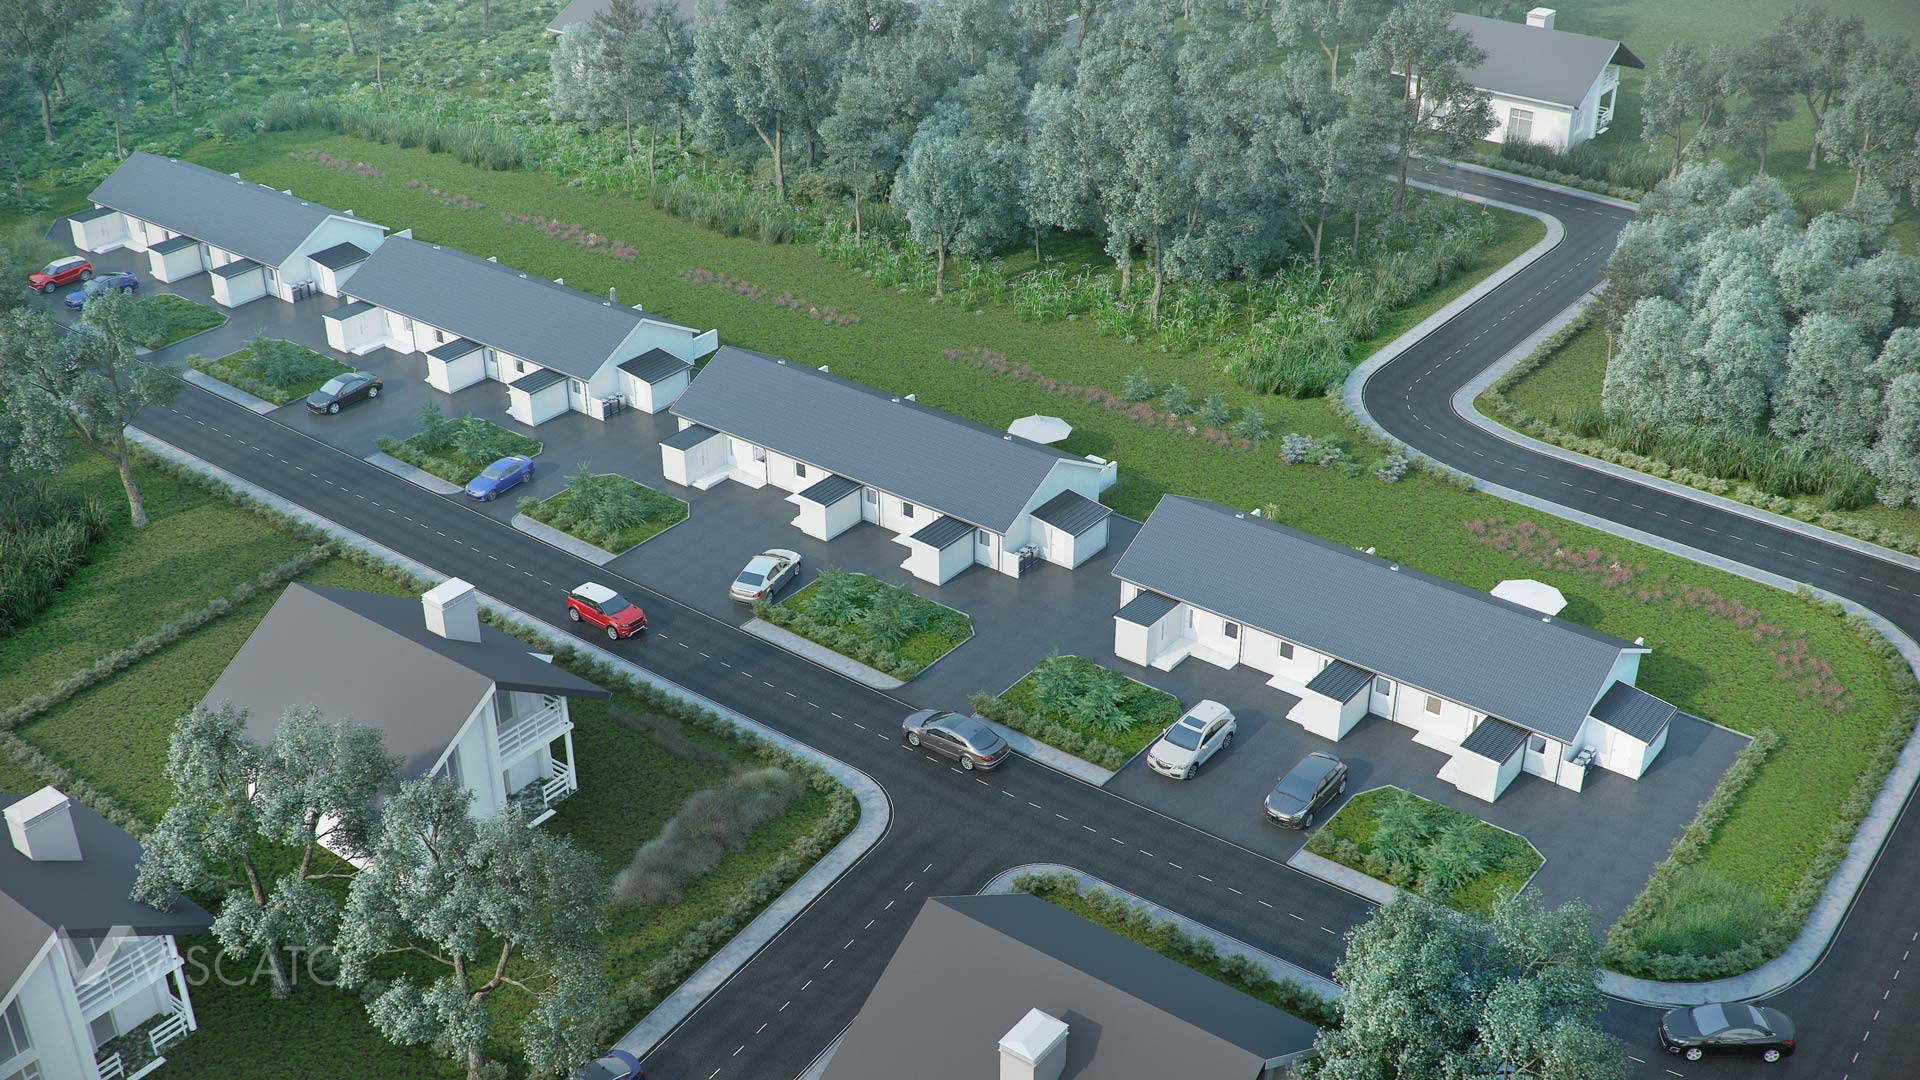 3d Exterior Visualization of settlement in Knislinge, Sweden- aerial view from entrance side